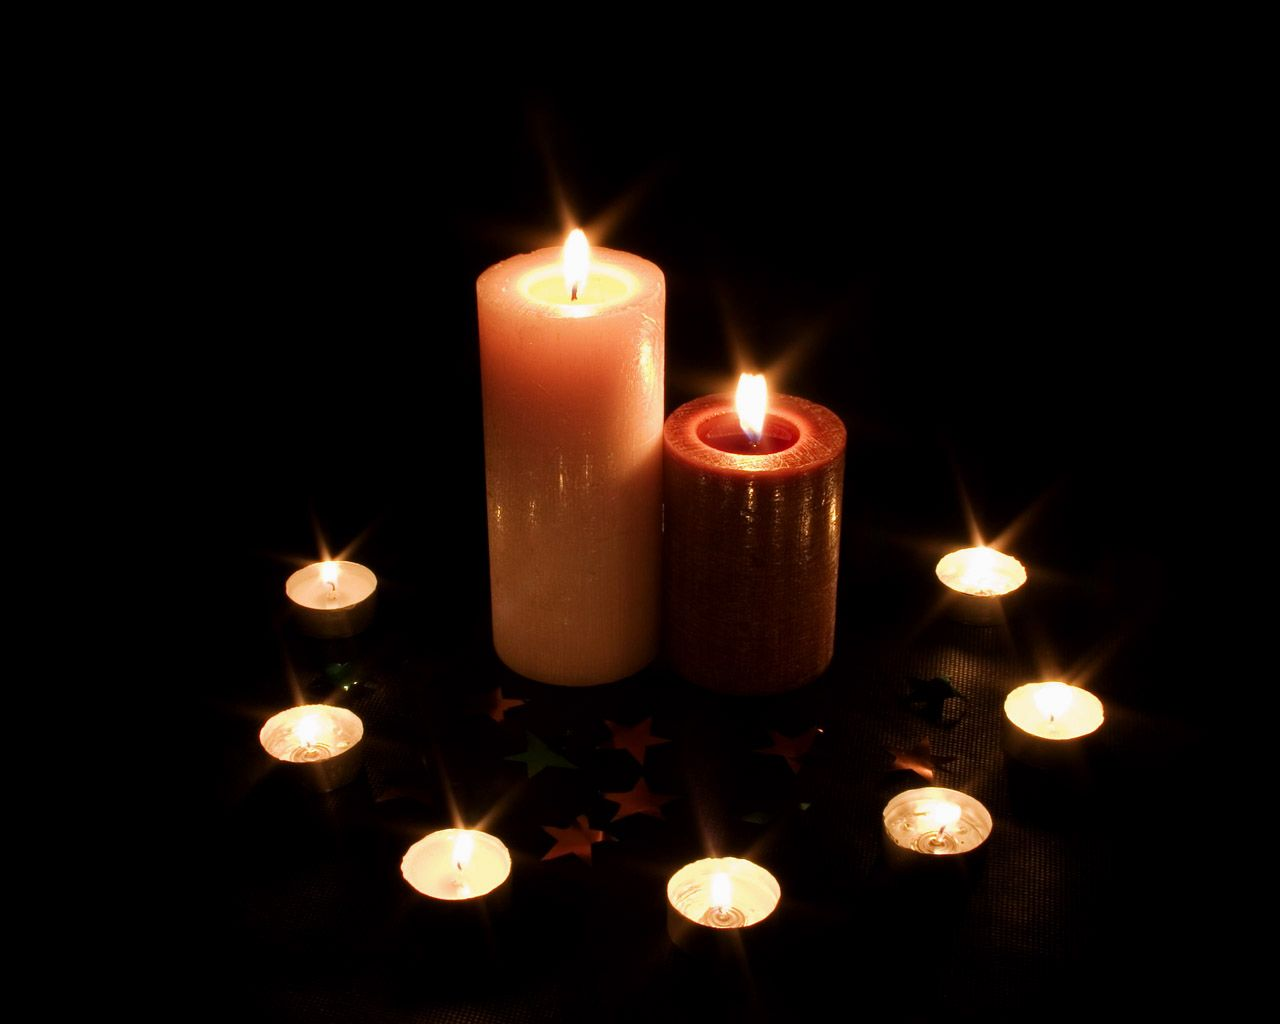 Romantic Candle Light , Romantic Candlelight Pictures, Candles at ... for Lighted Candle Gif  76uhy